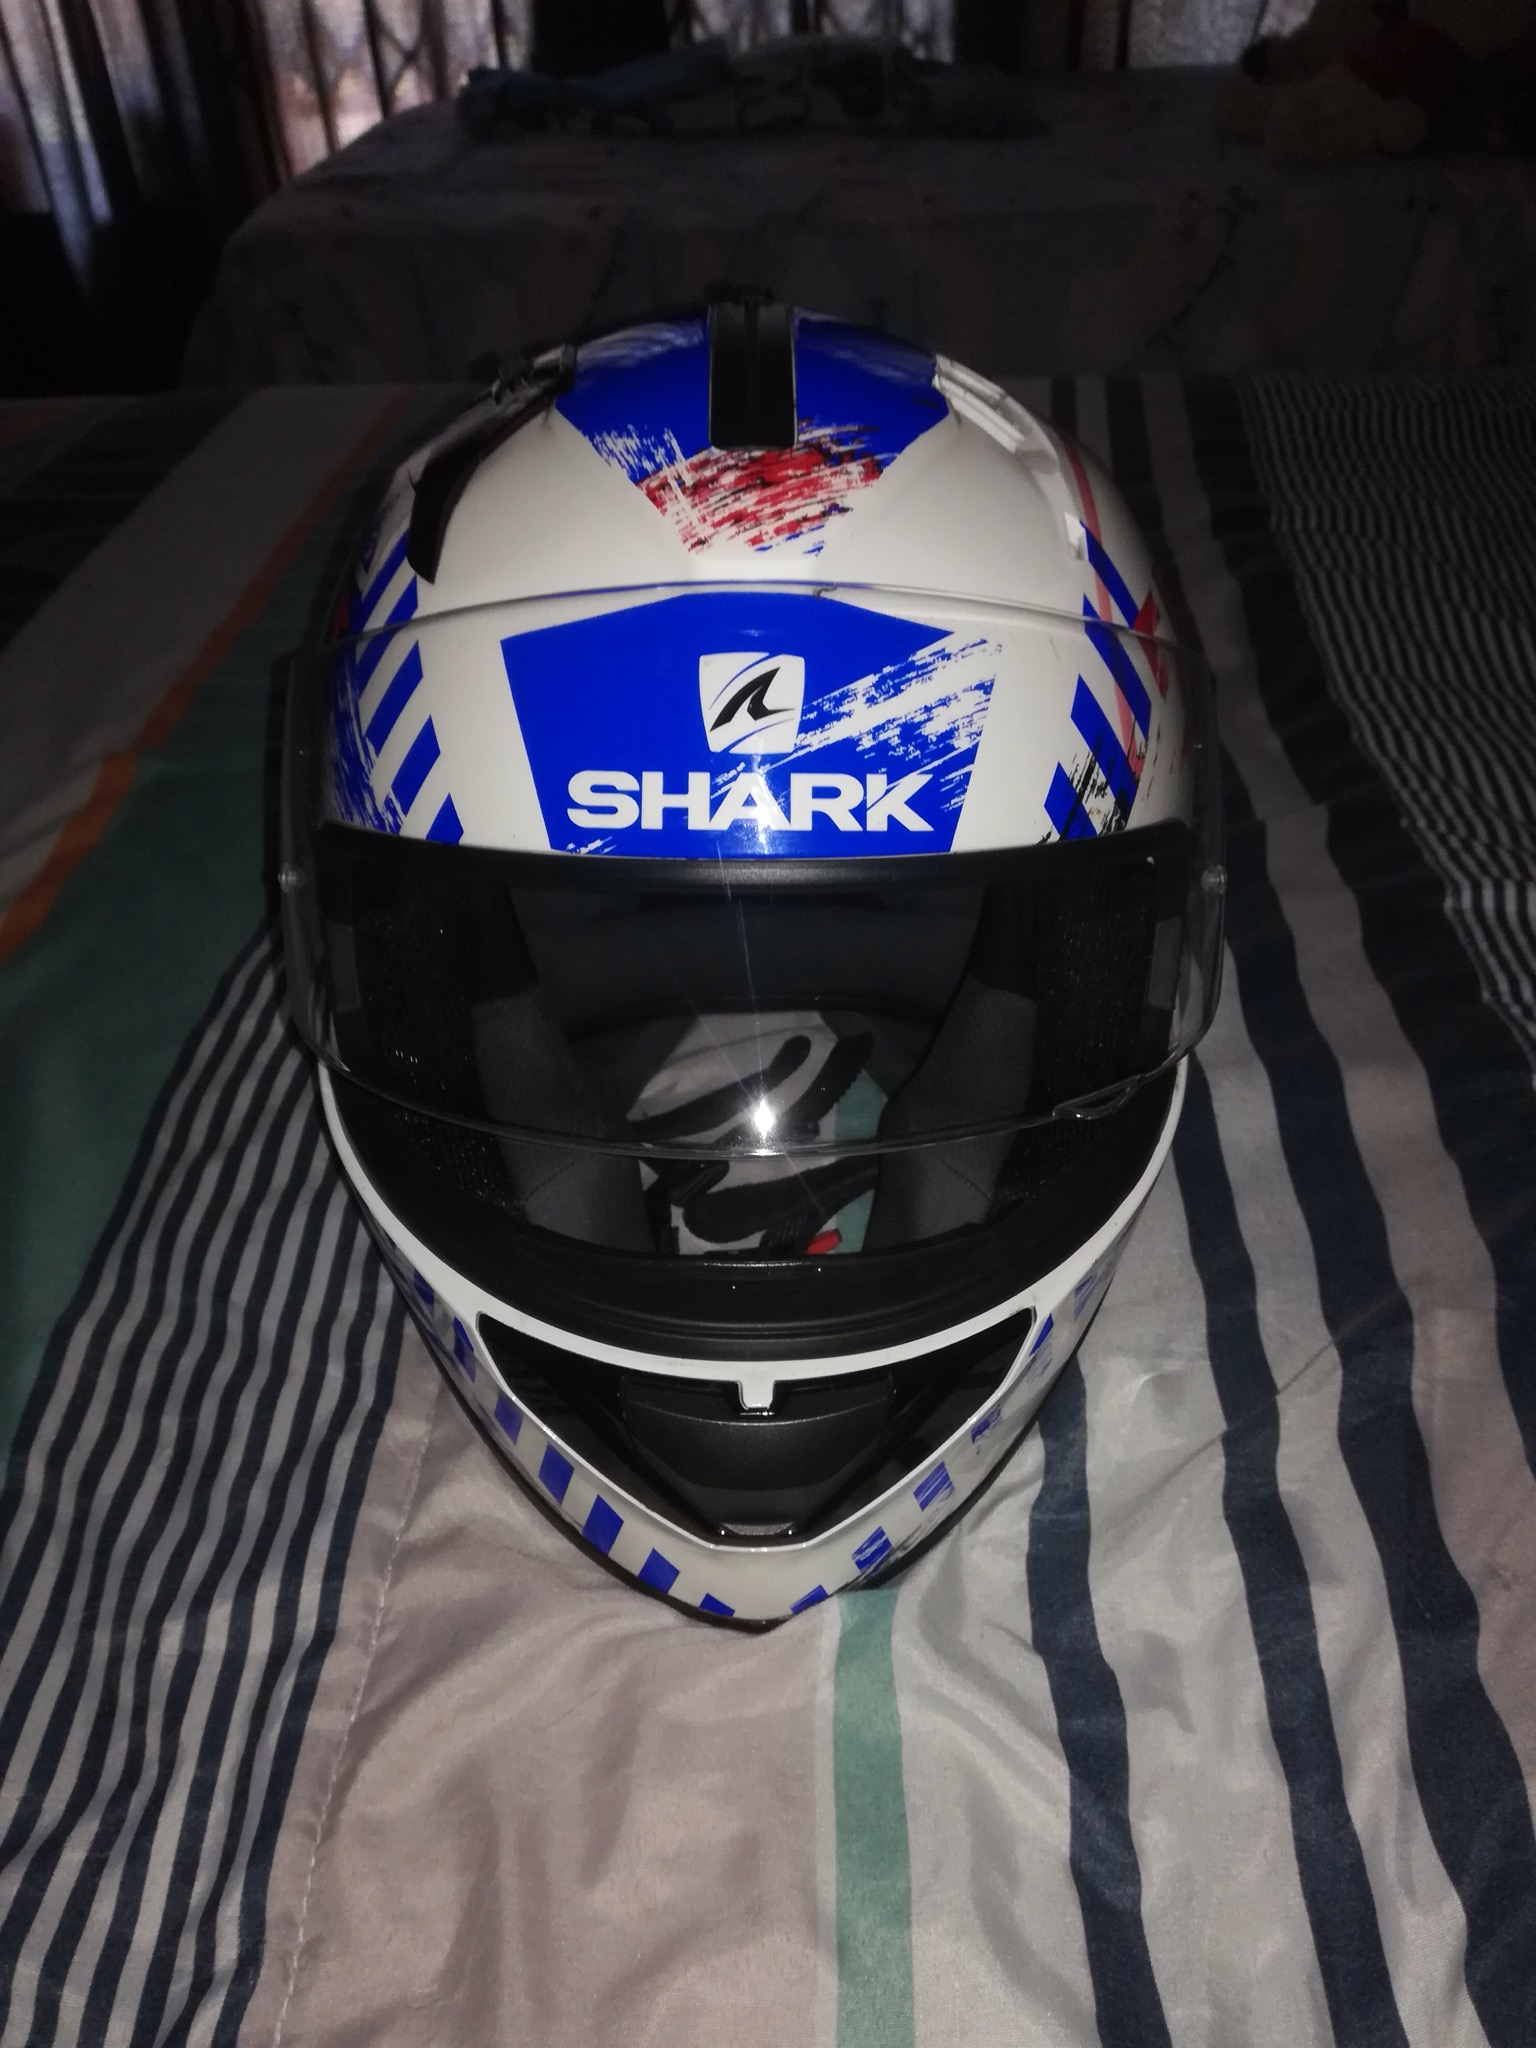 Shark helmet size small,almost brand new,only used a few times